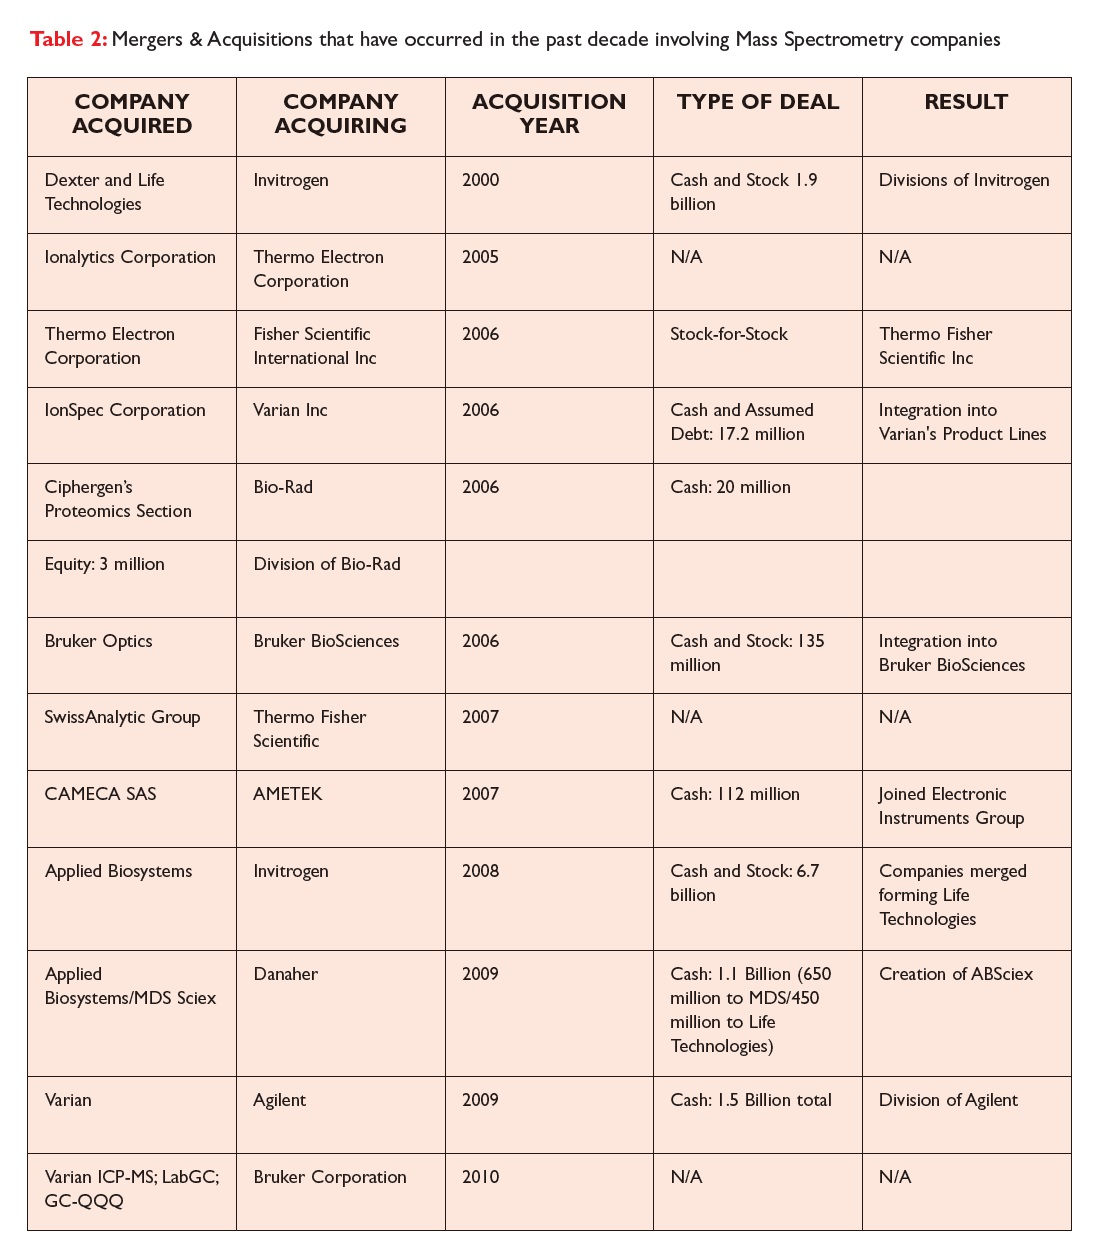 Table 2 Mergers & Acquisitions that have occurered in the past decade involving Mass Spectrometry companies